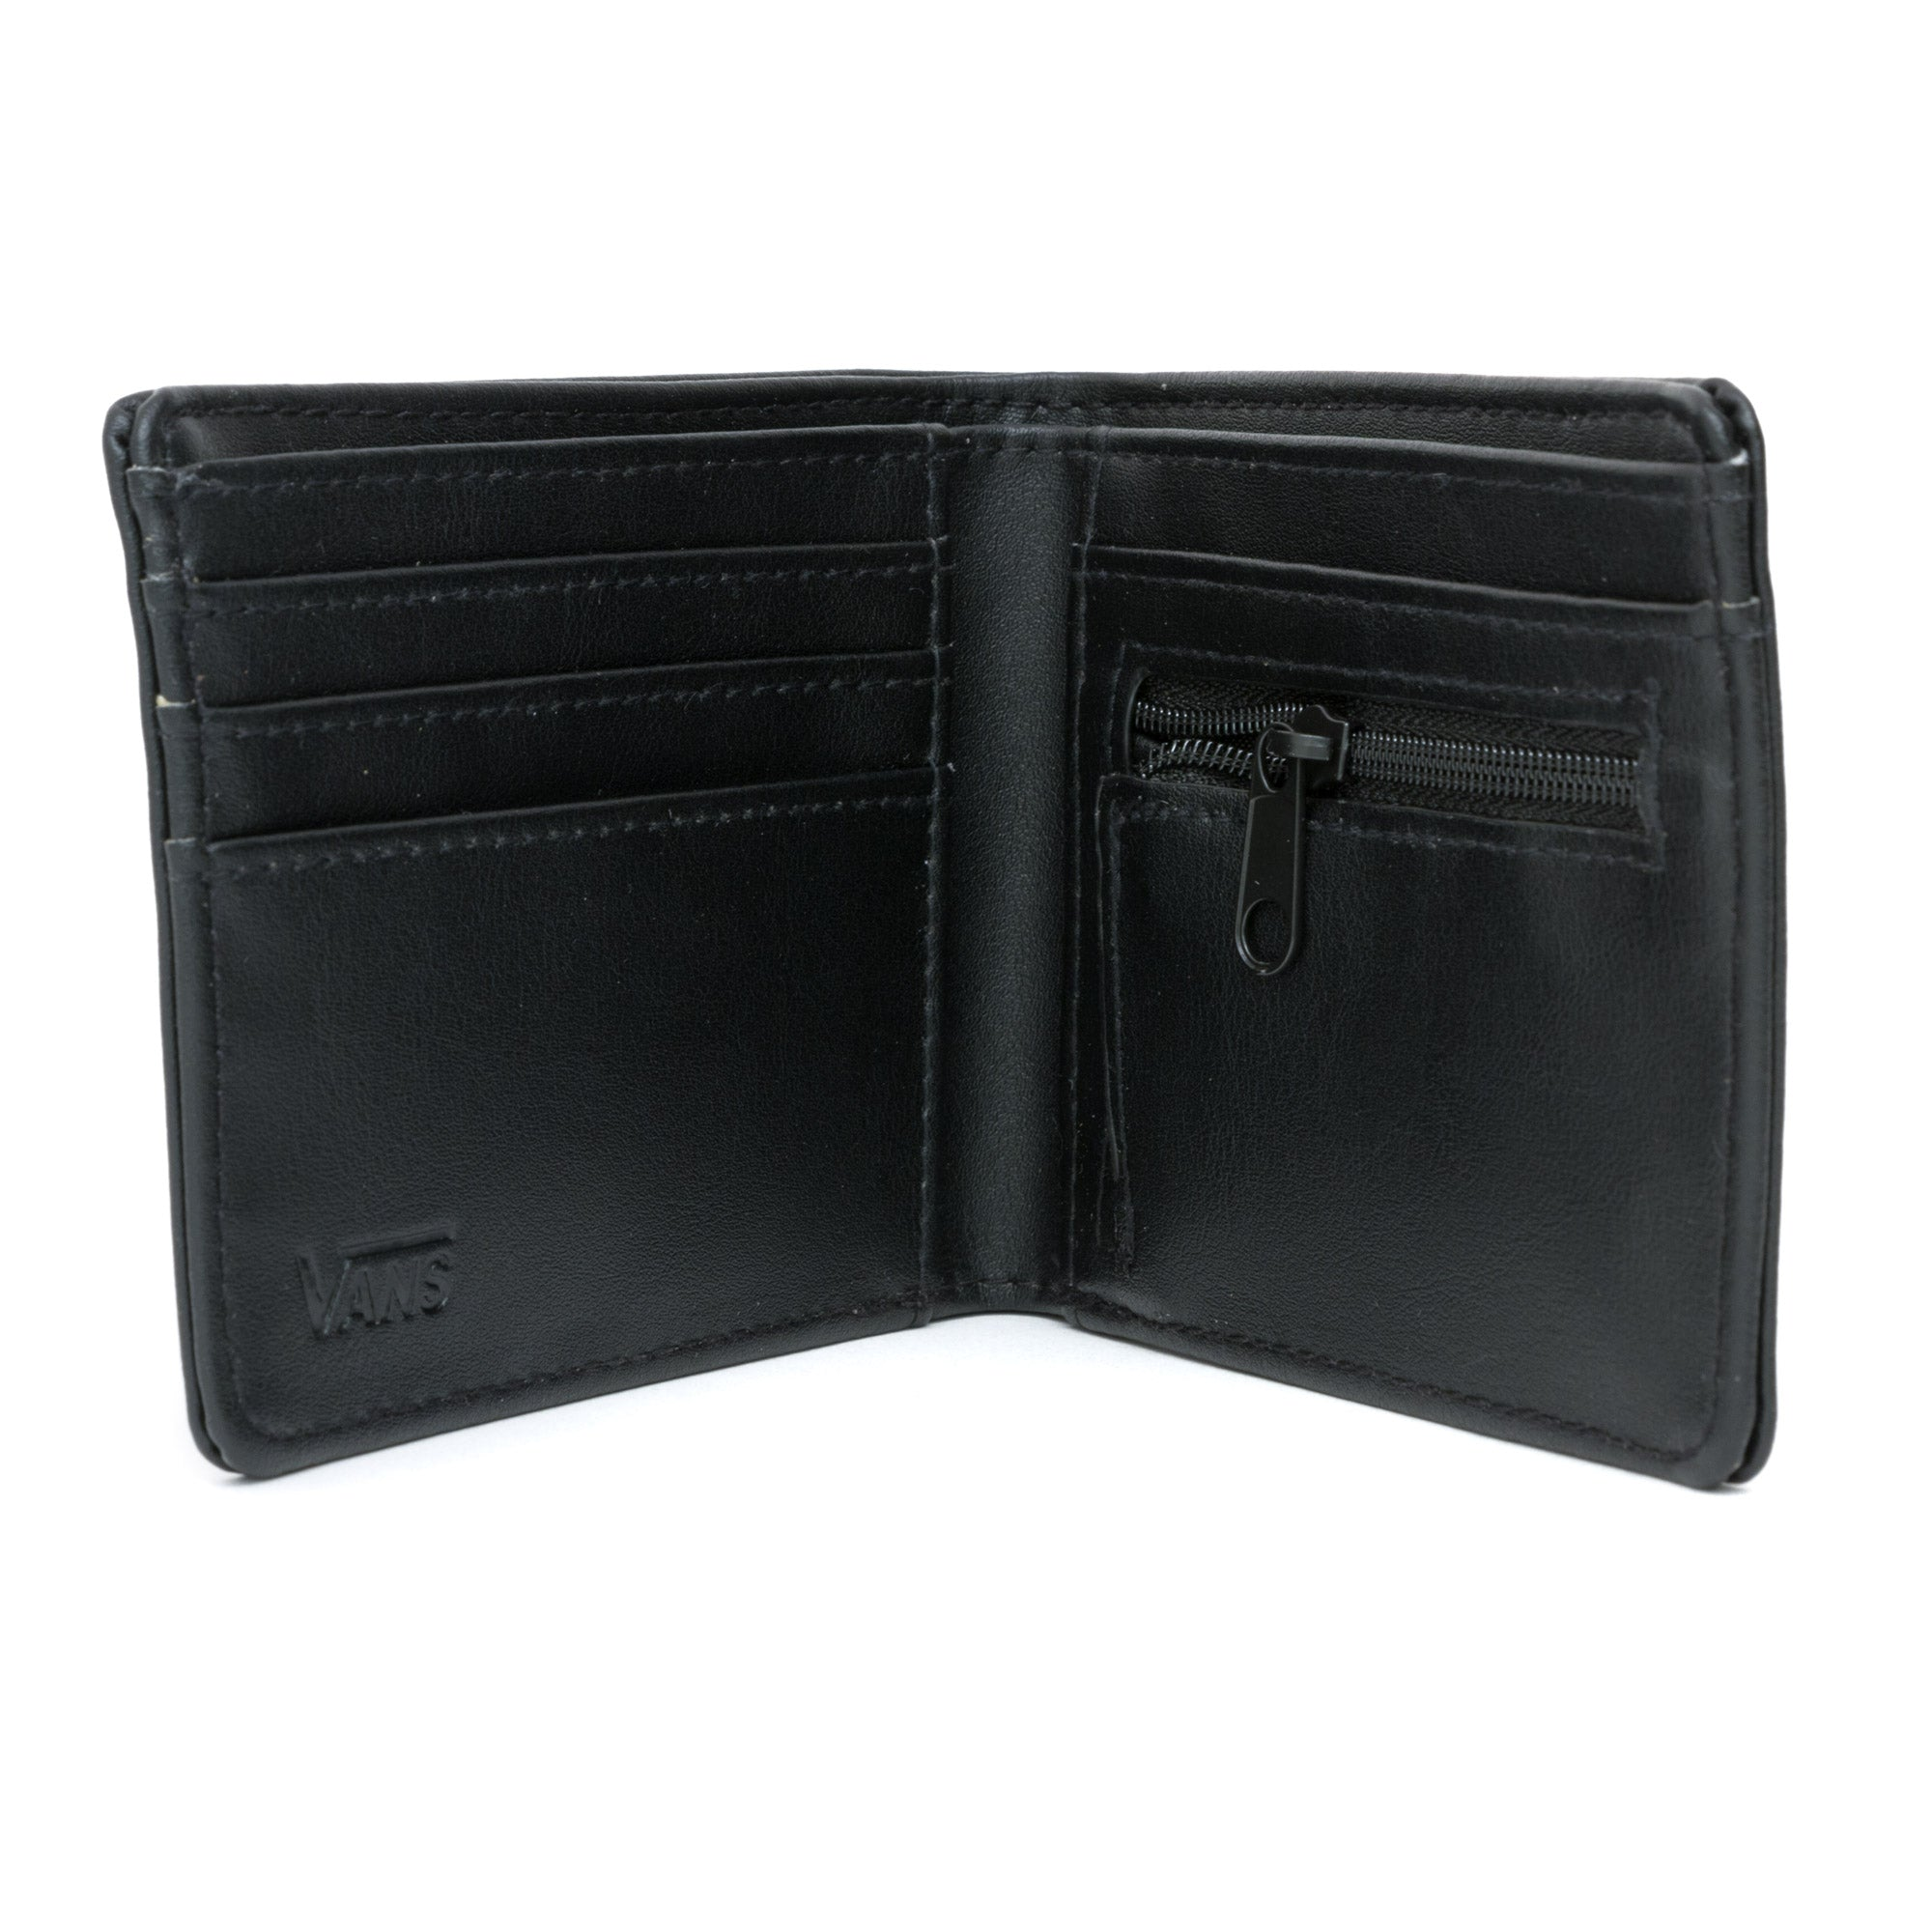 e1a958412724ef Vans Full Patch Bi Fold Wallet - Black Open